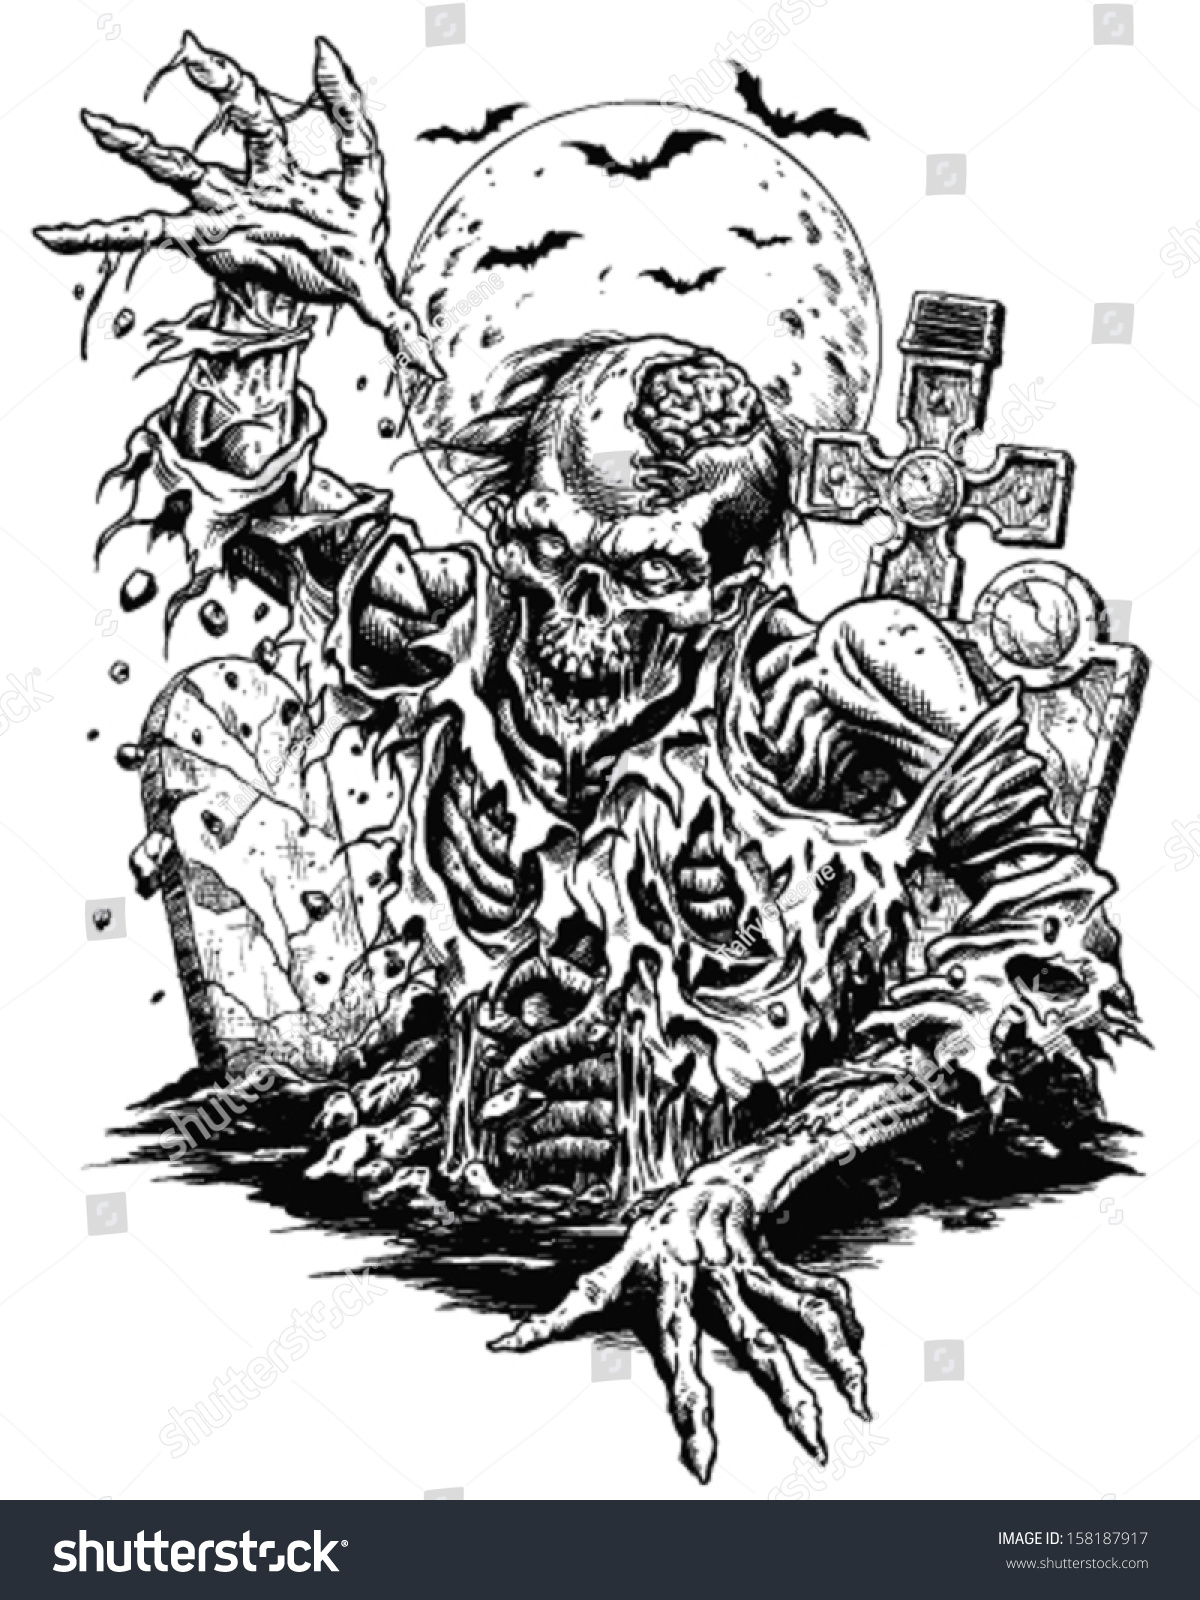 Gallery For gt Zombie Comic Art